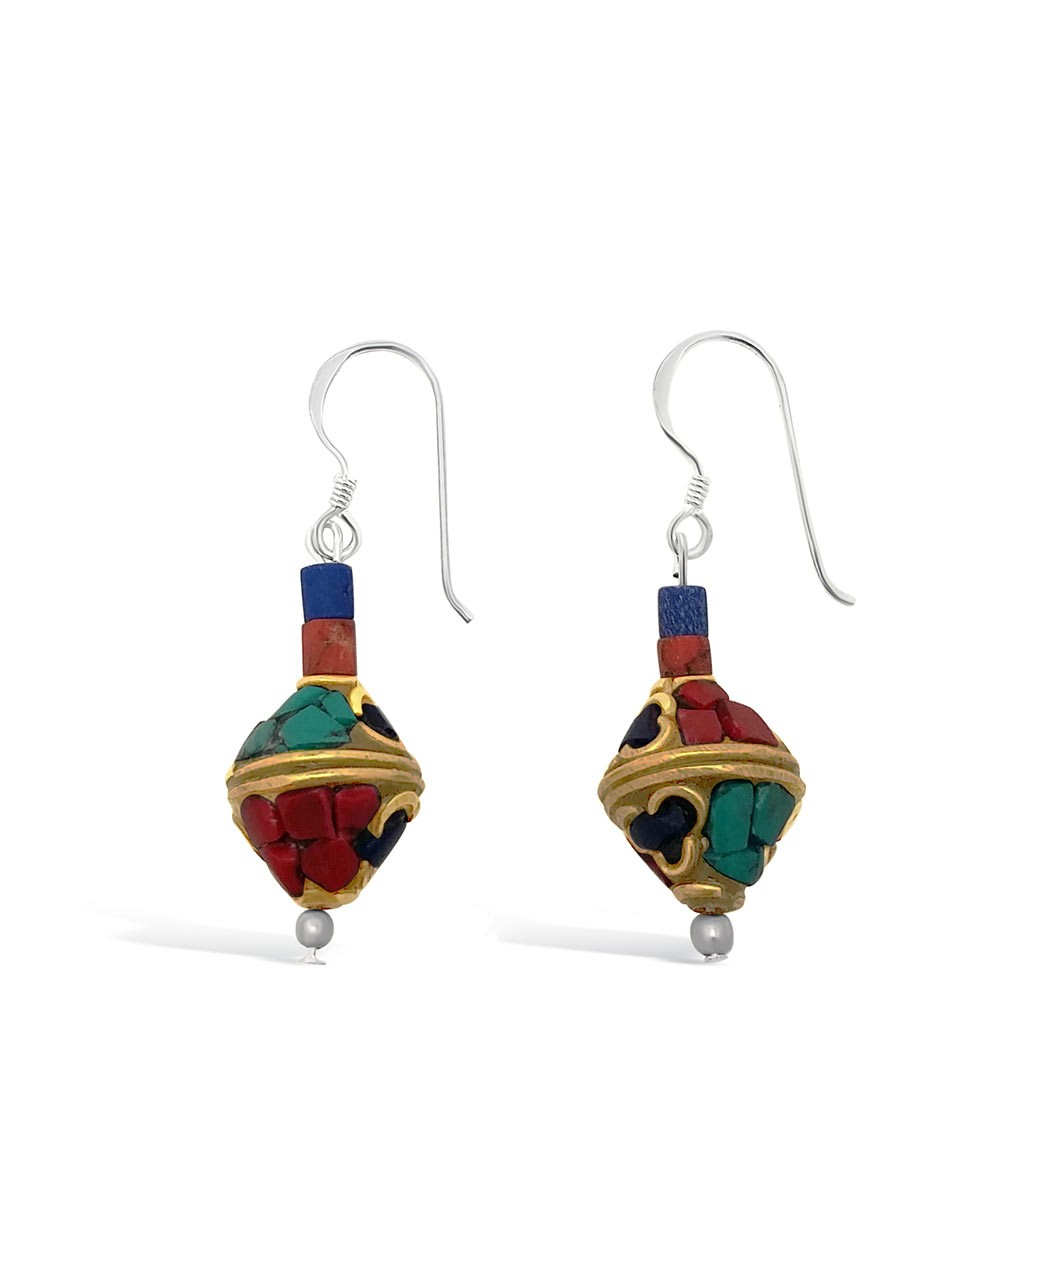 Boho Style Nepalse Turquoise Earrings